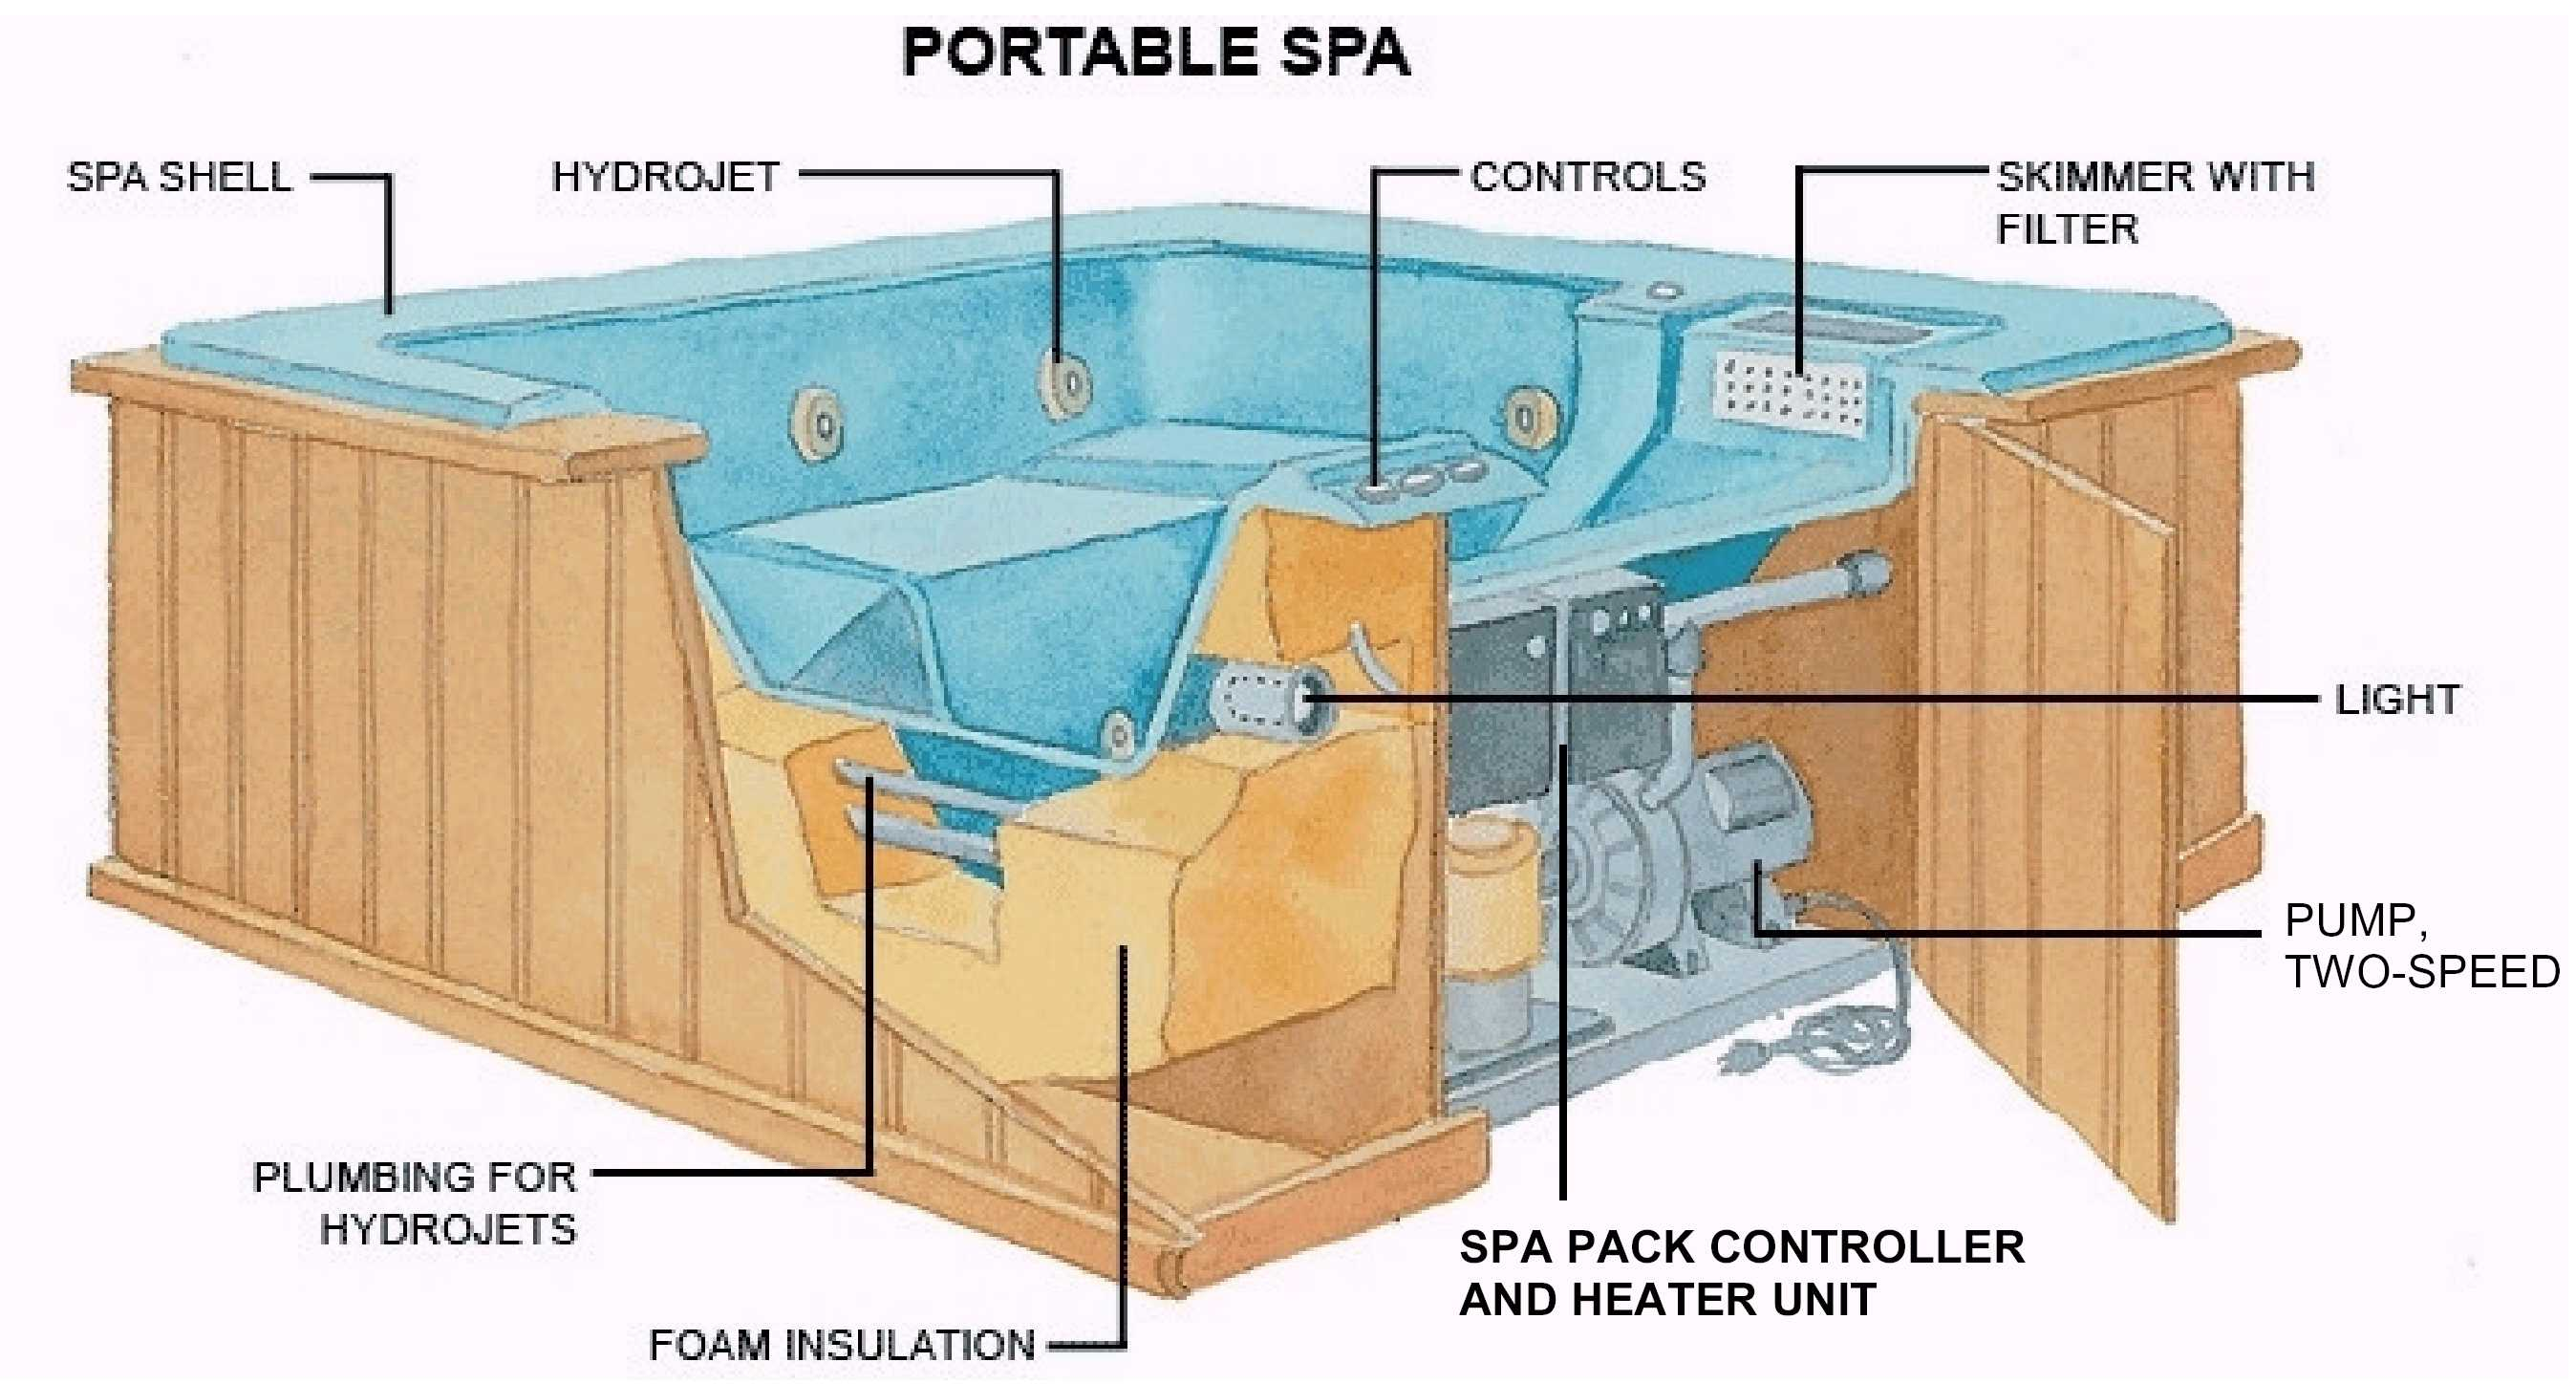 hottubpic how spas hot tubs work the spa guys wa washington jacuzzi hot tub wiring diagram at crackthecode.co